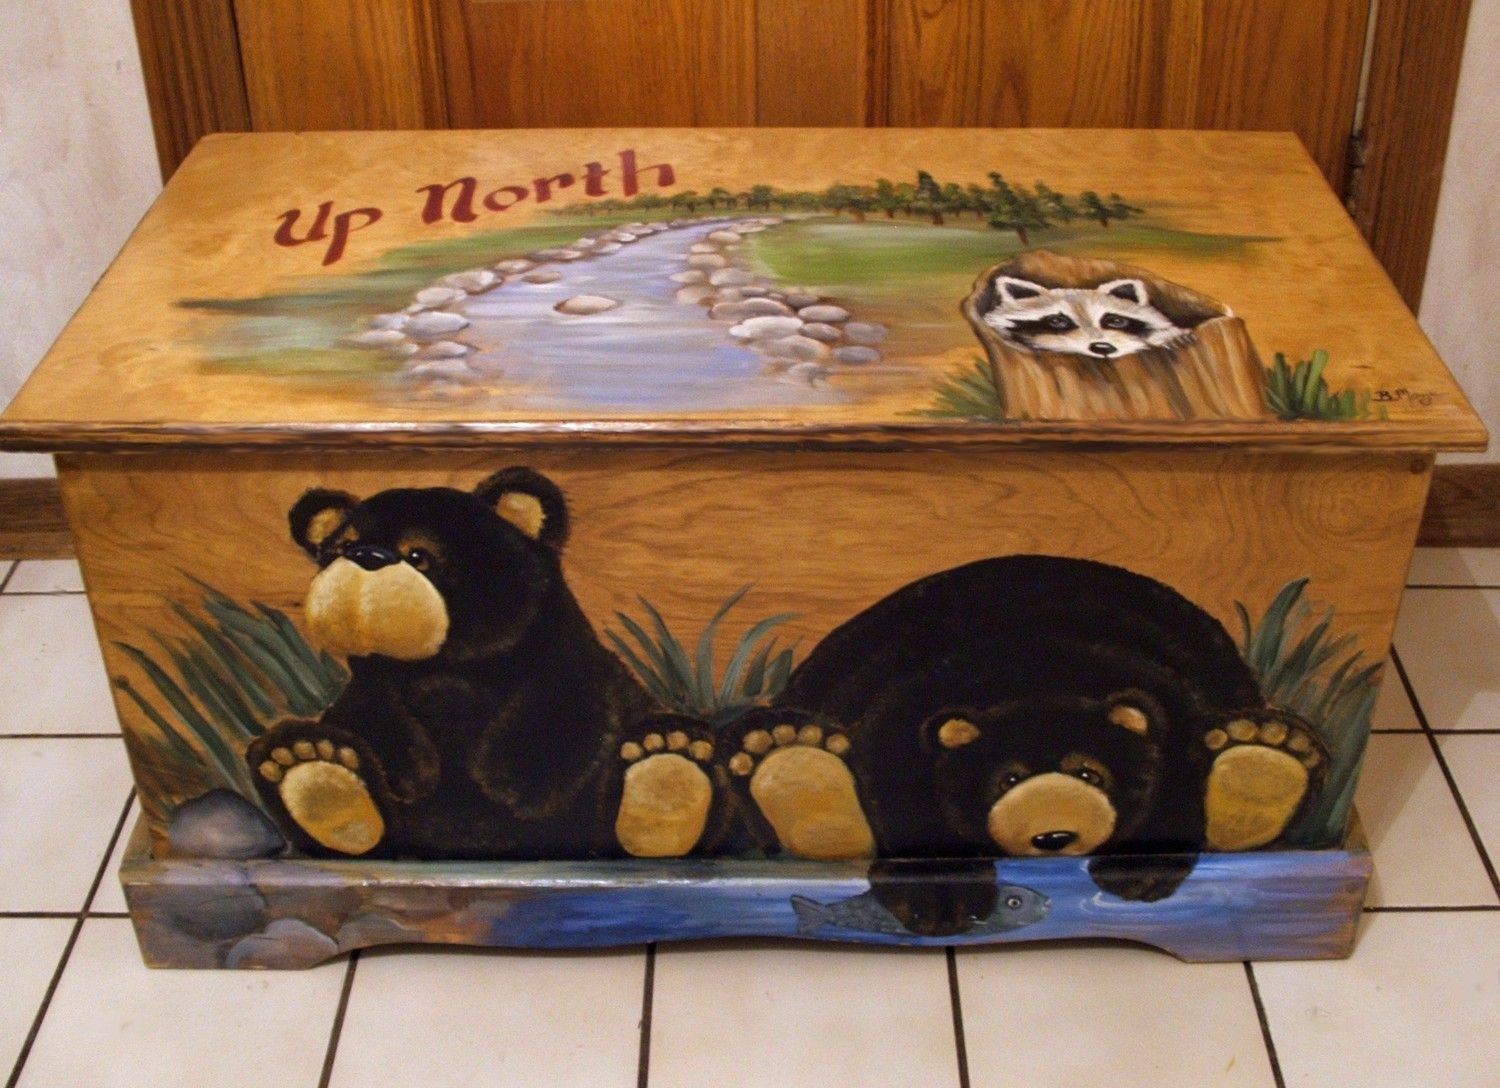 Kids wooden toy chest sunny safari - Up North Black Bear Toy Box Kids Furniture Wooden Chest Hand Made Hand Painted